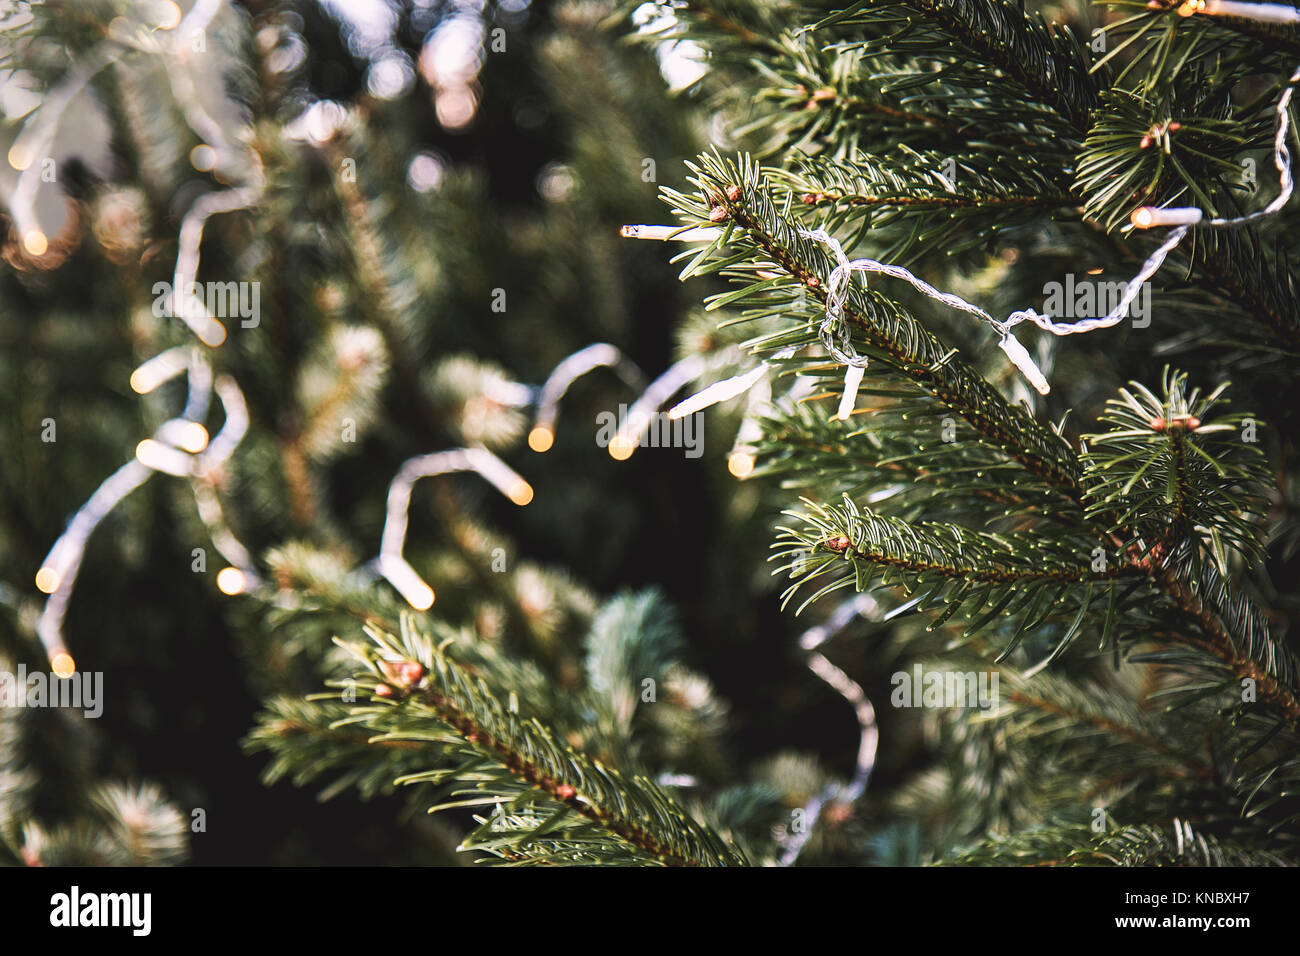 Green fir twigs with tiny sparkling deko lights hanging as electric garland, blurry background - Stock Image